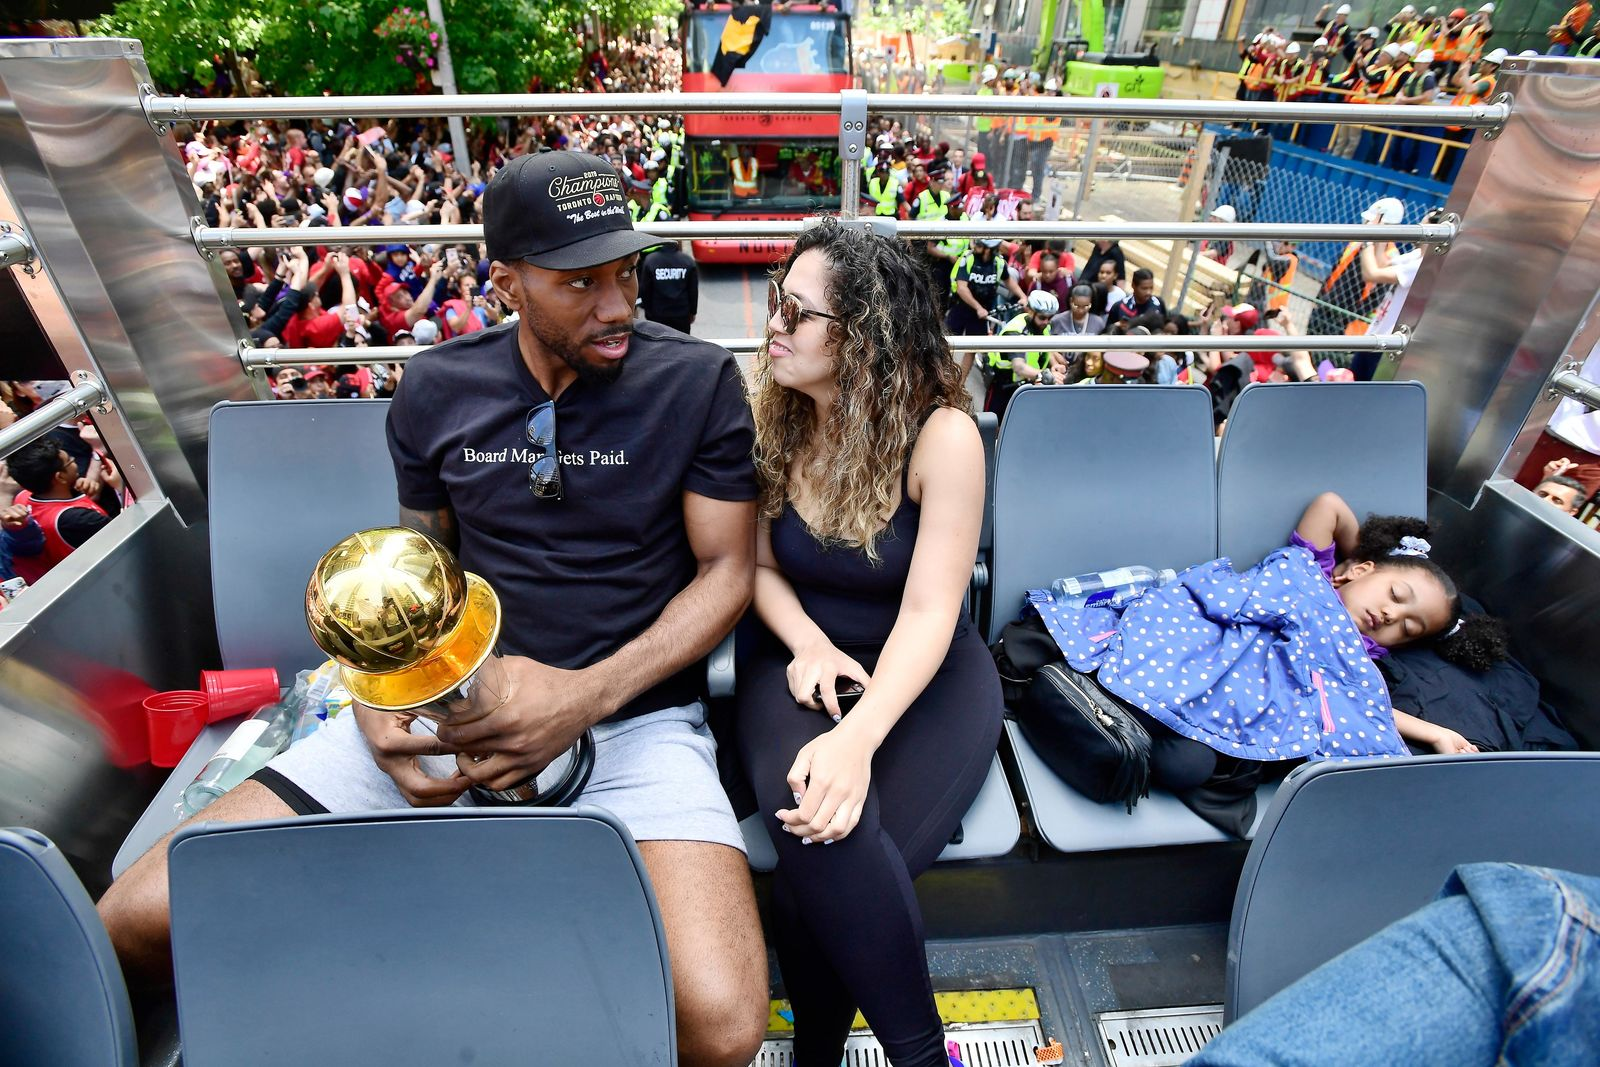 Toronto Raptors forward Kawhi Leonard and his girlfriend Kishele Shipley take a seat as their daughter Kaliyah naps during the NBA basketball championship team's victory parade in Toronto, Monday, June 17, 2019. (Frank Gunn/The Canadian Press via AP)